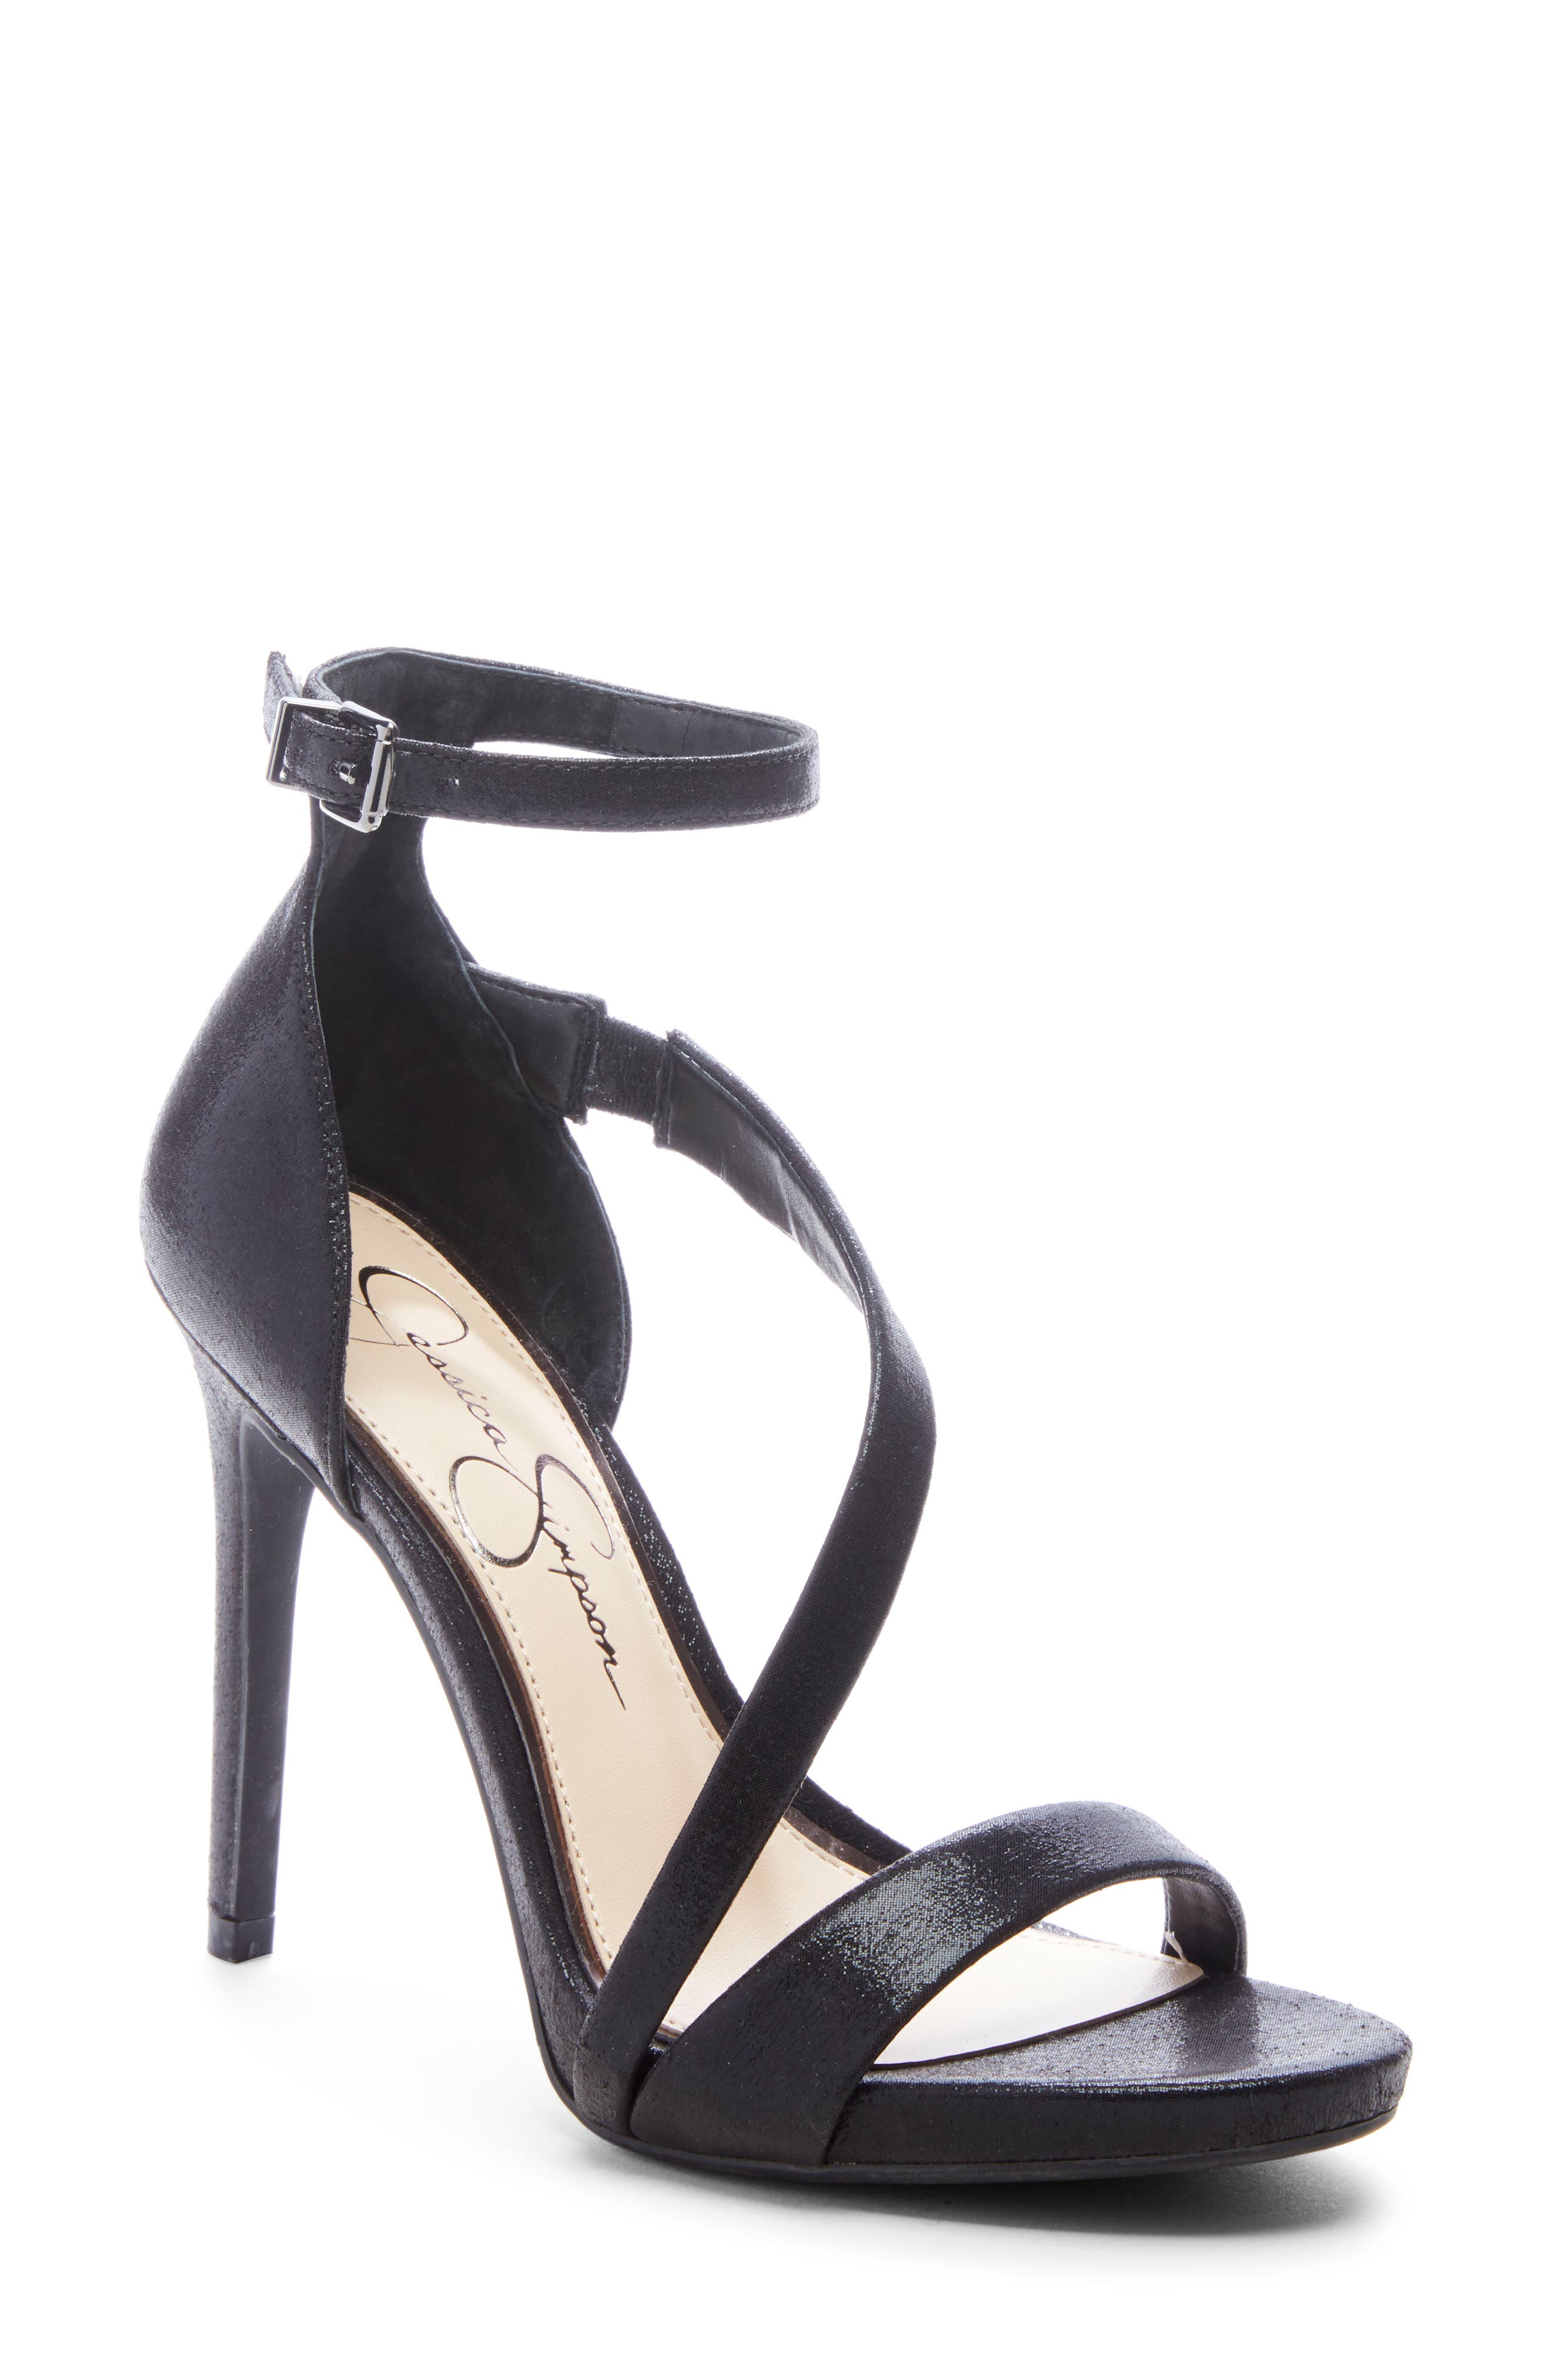 A diagonal strap adds subtle drama to a lofty sandal that\\\'s ready to step out on the town. Style Name: Jessica Simpson Rayli Sandal (Women). Style Number: 5813239. Available in stores.